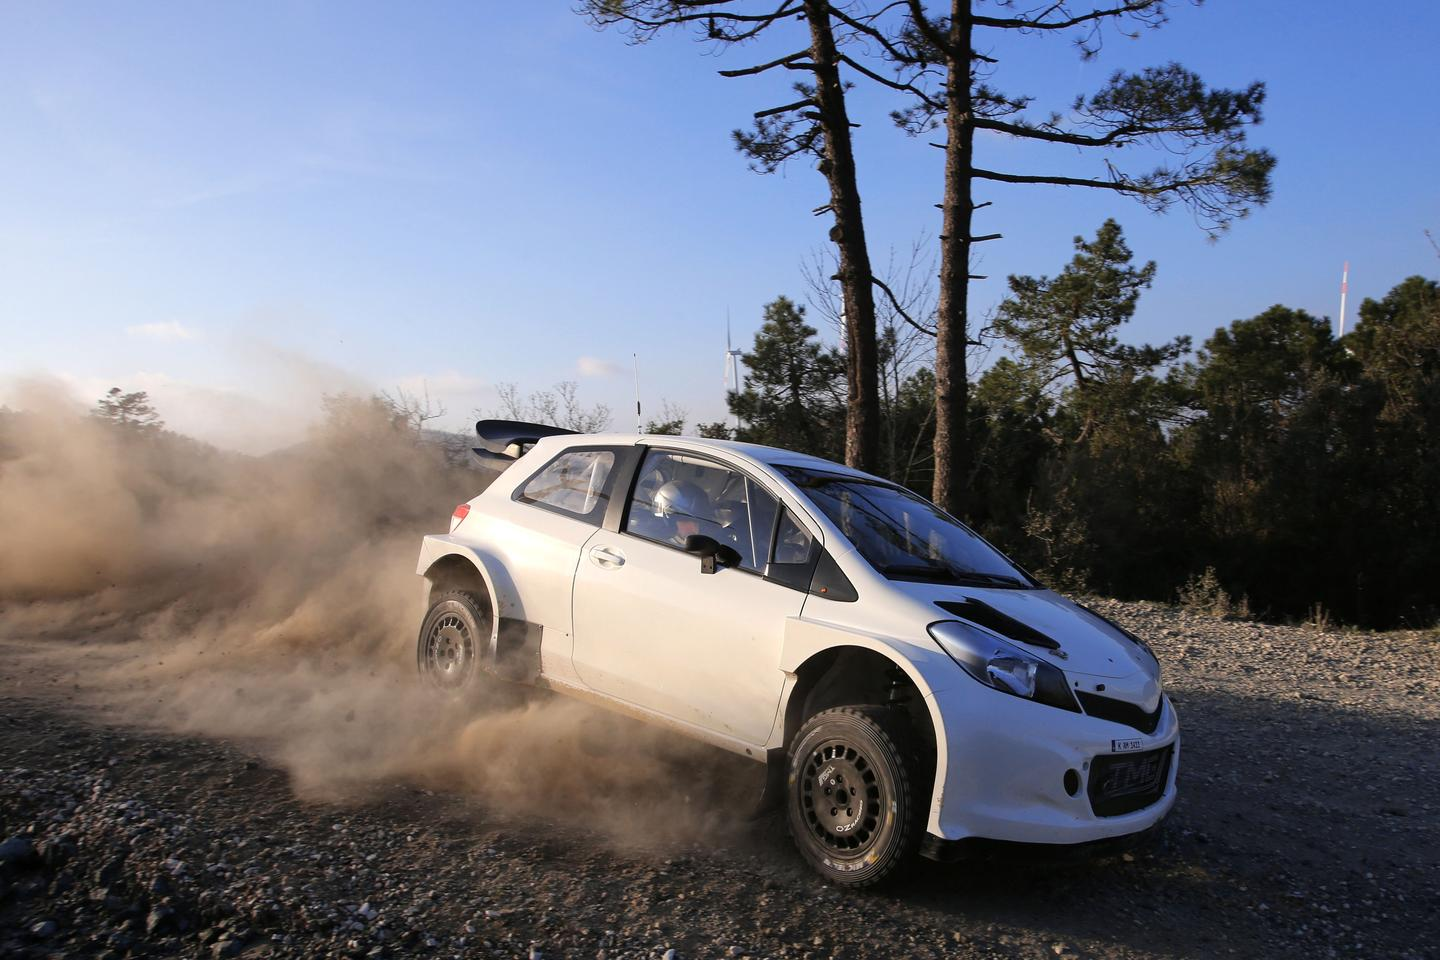 The Yaris WRC is currently in testing